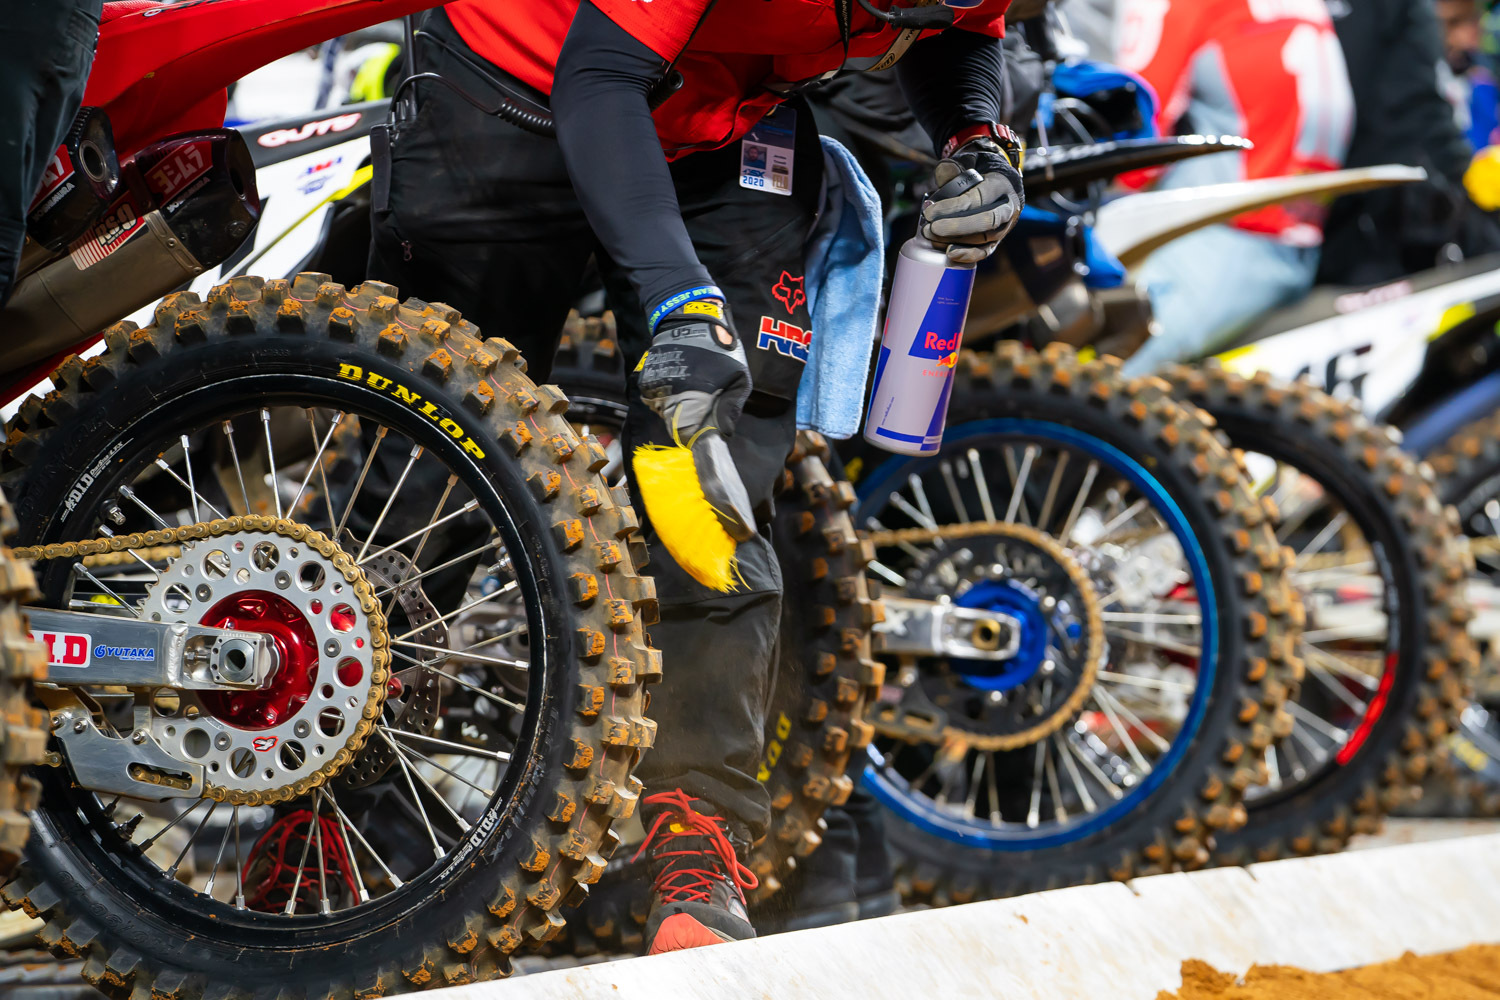 2020-ARLINGTON-SUPERCROSS_KICKSTART_0092